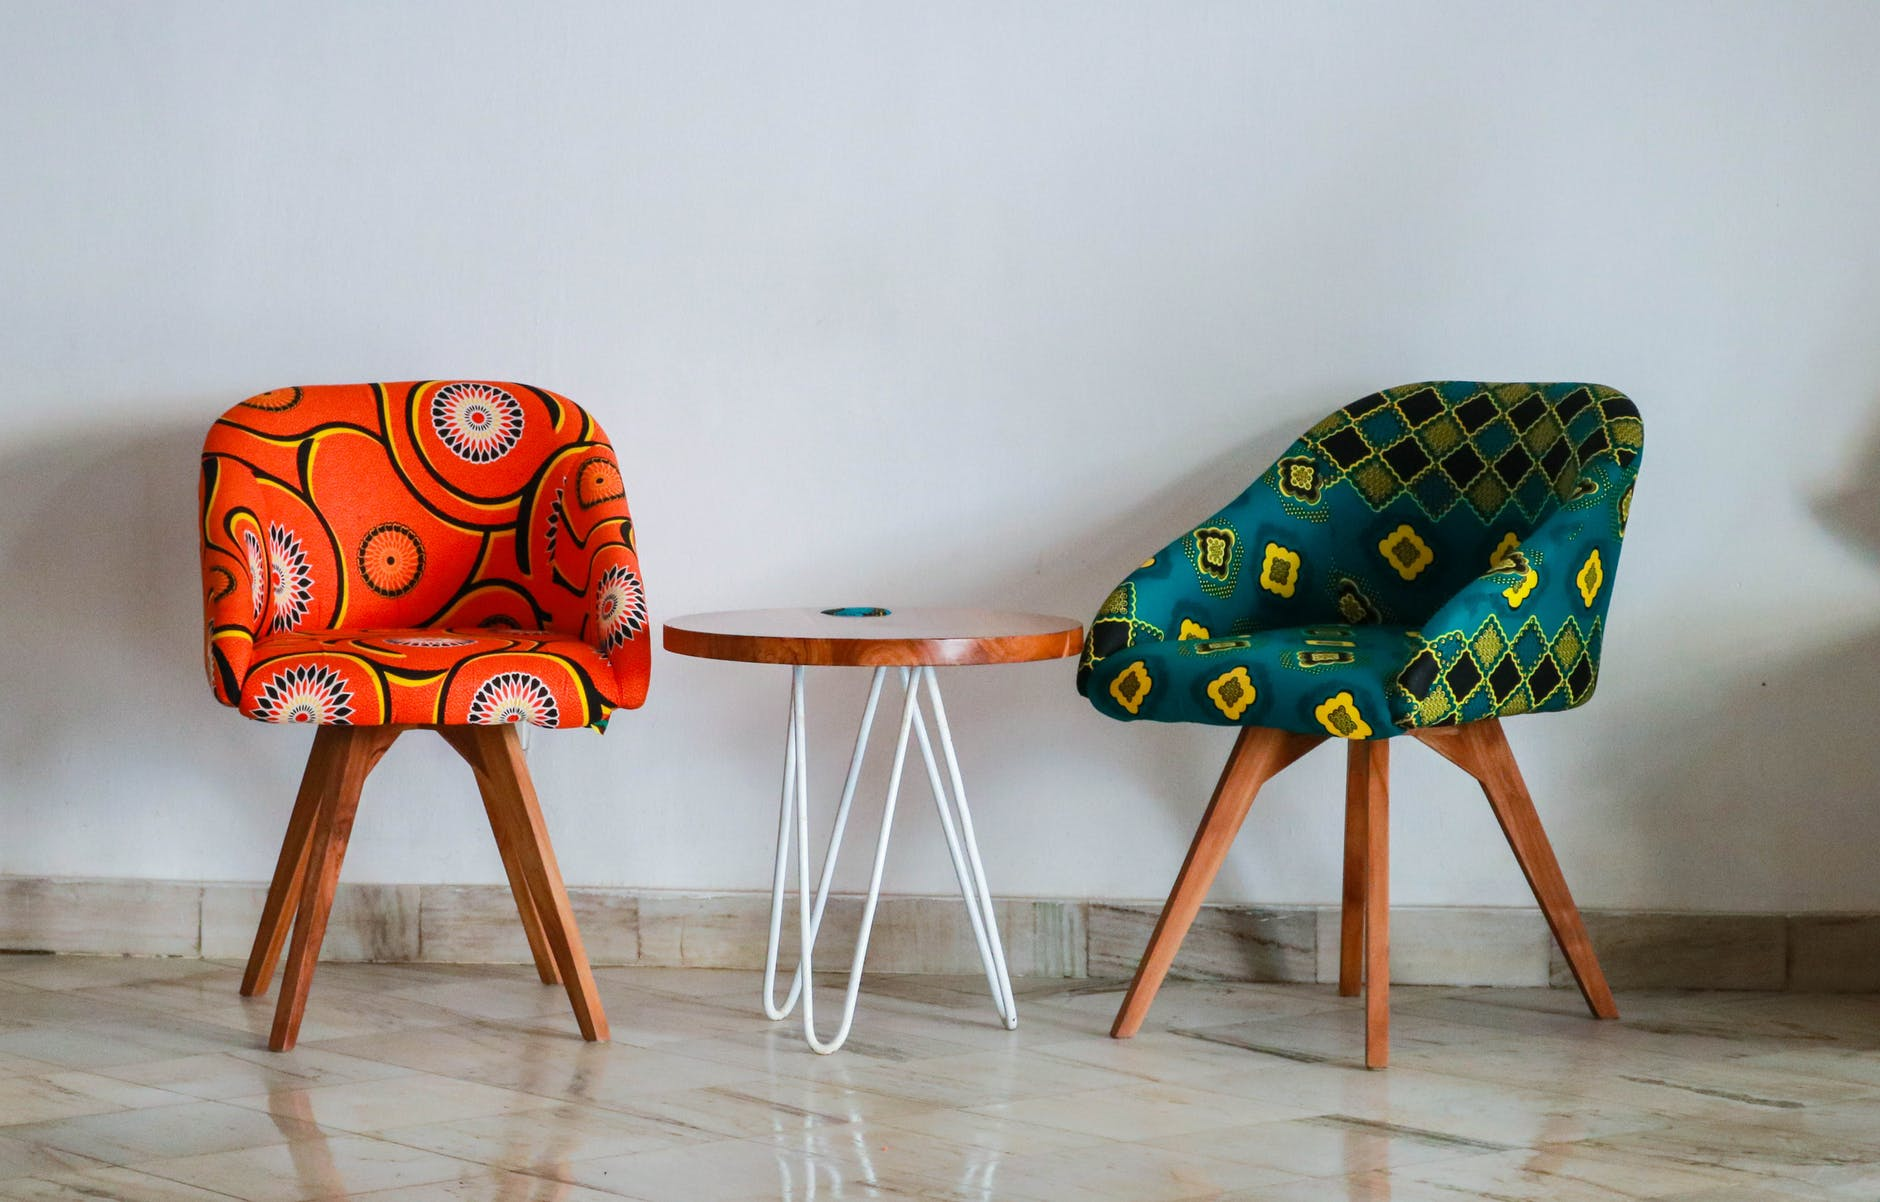 Two colourful chairs and round wooden table.